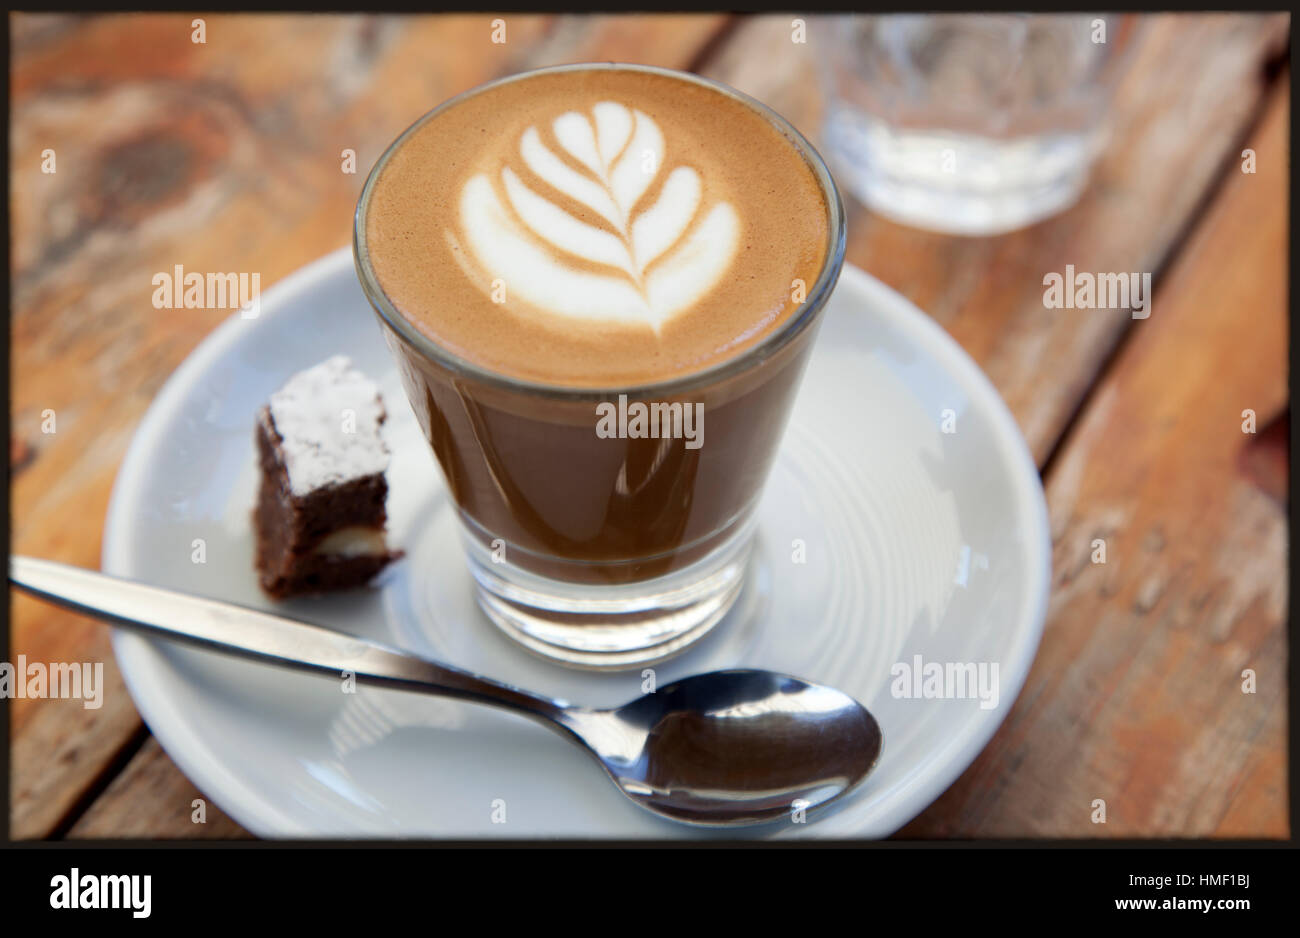 A perfectly made caffe macchiato and brownie on a cafe table outdoors - Stock Image